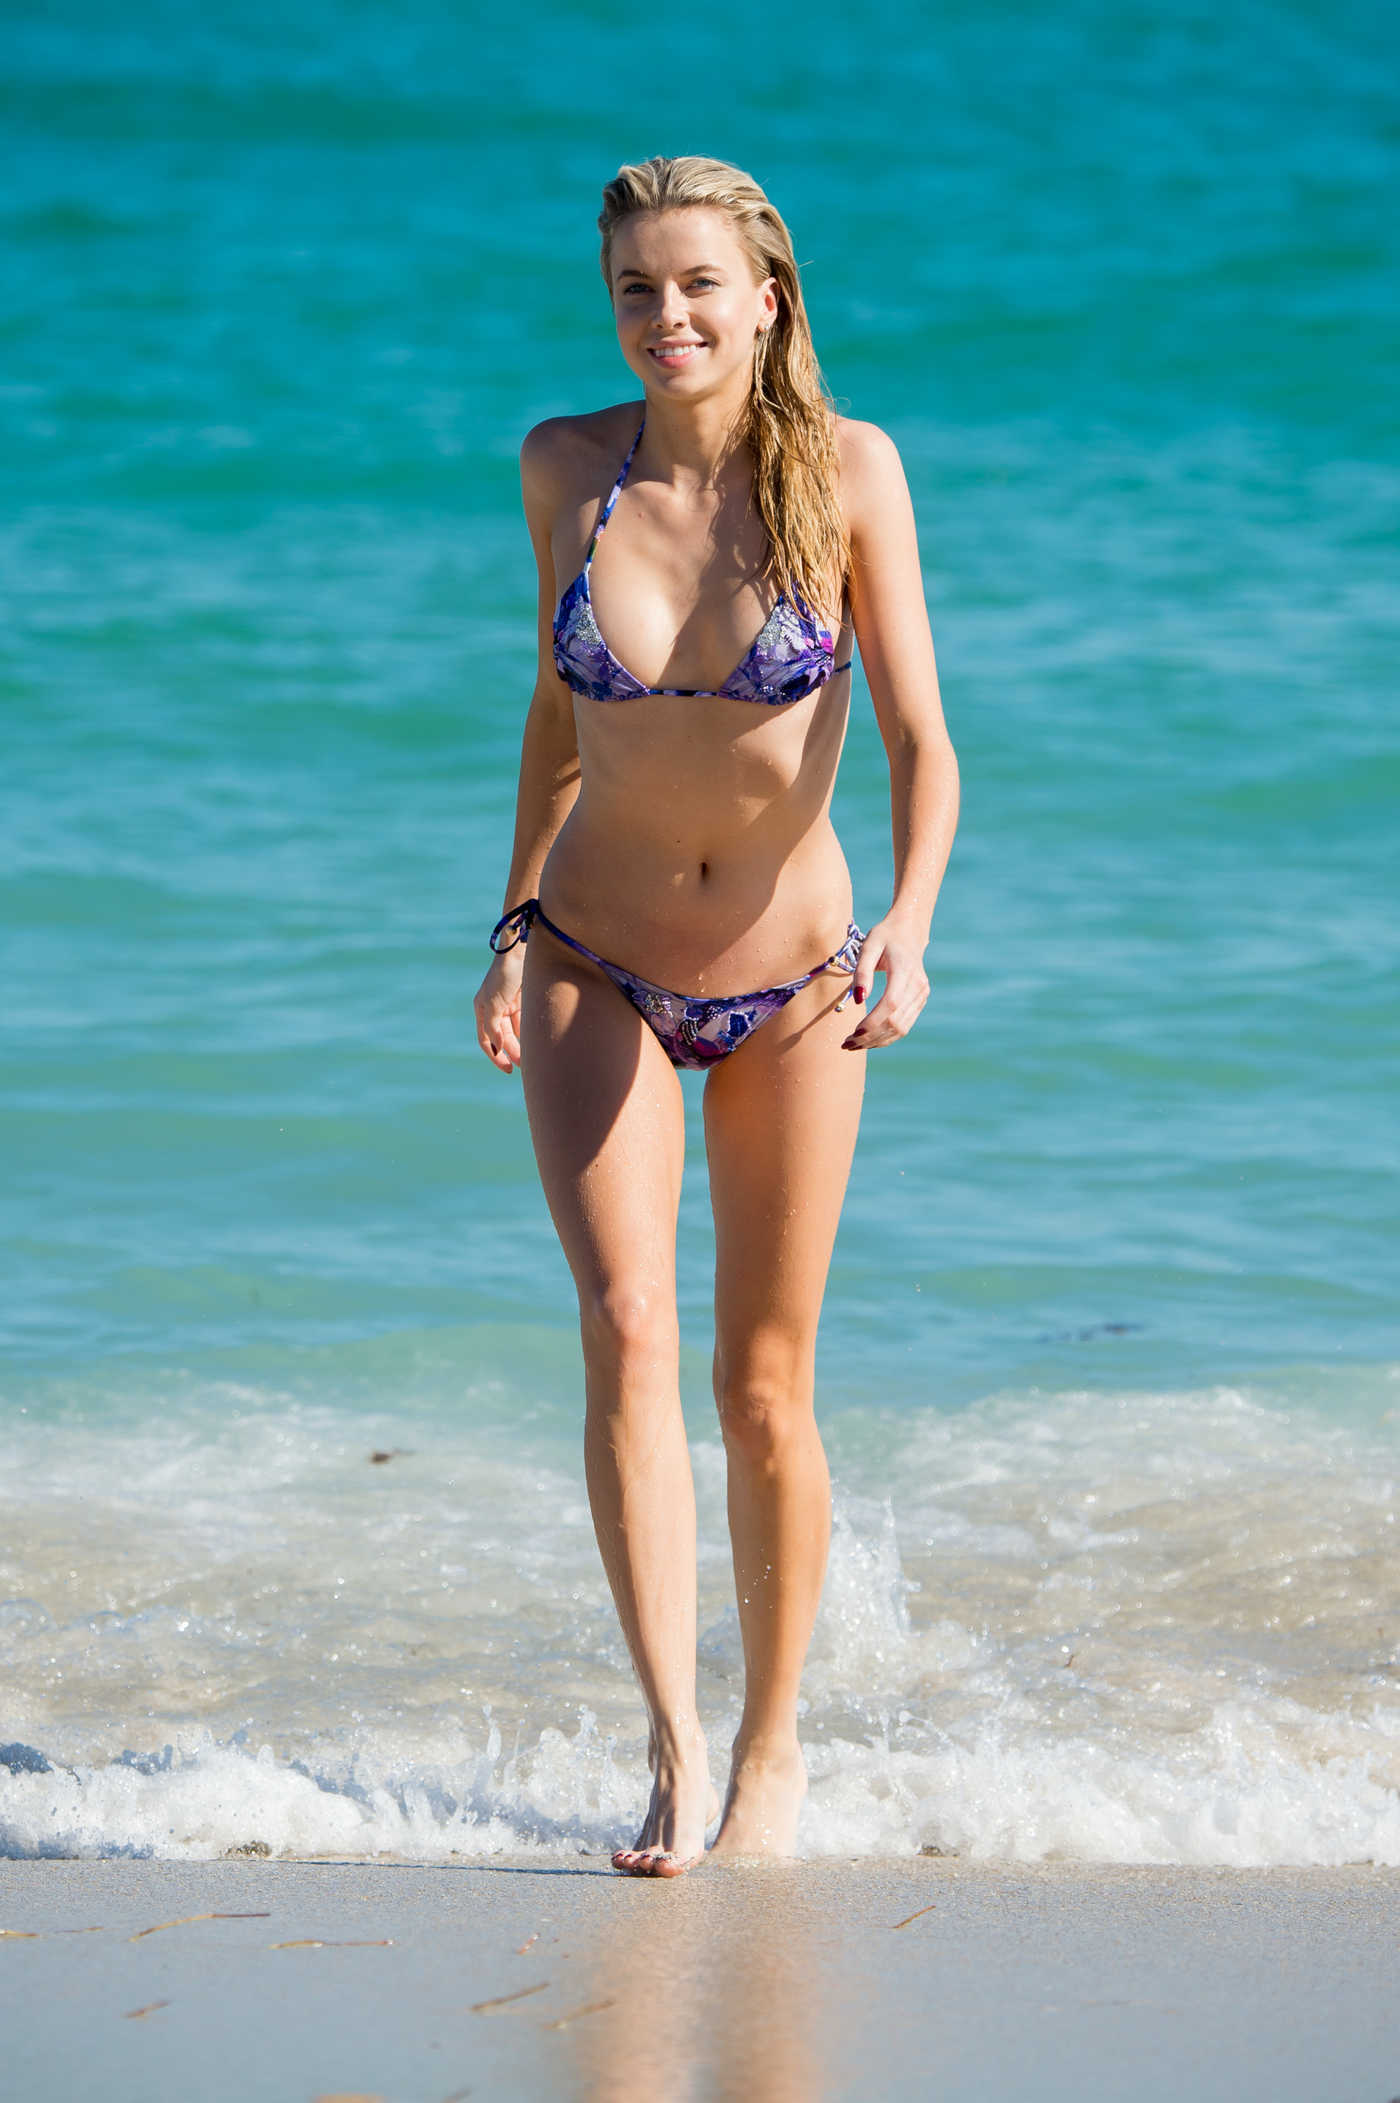 Louisa Warwick Wears a Violet Bikini at the Beach in Miami 11/25/2017